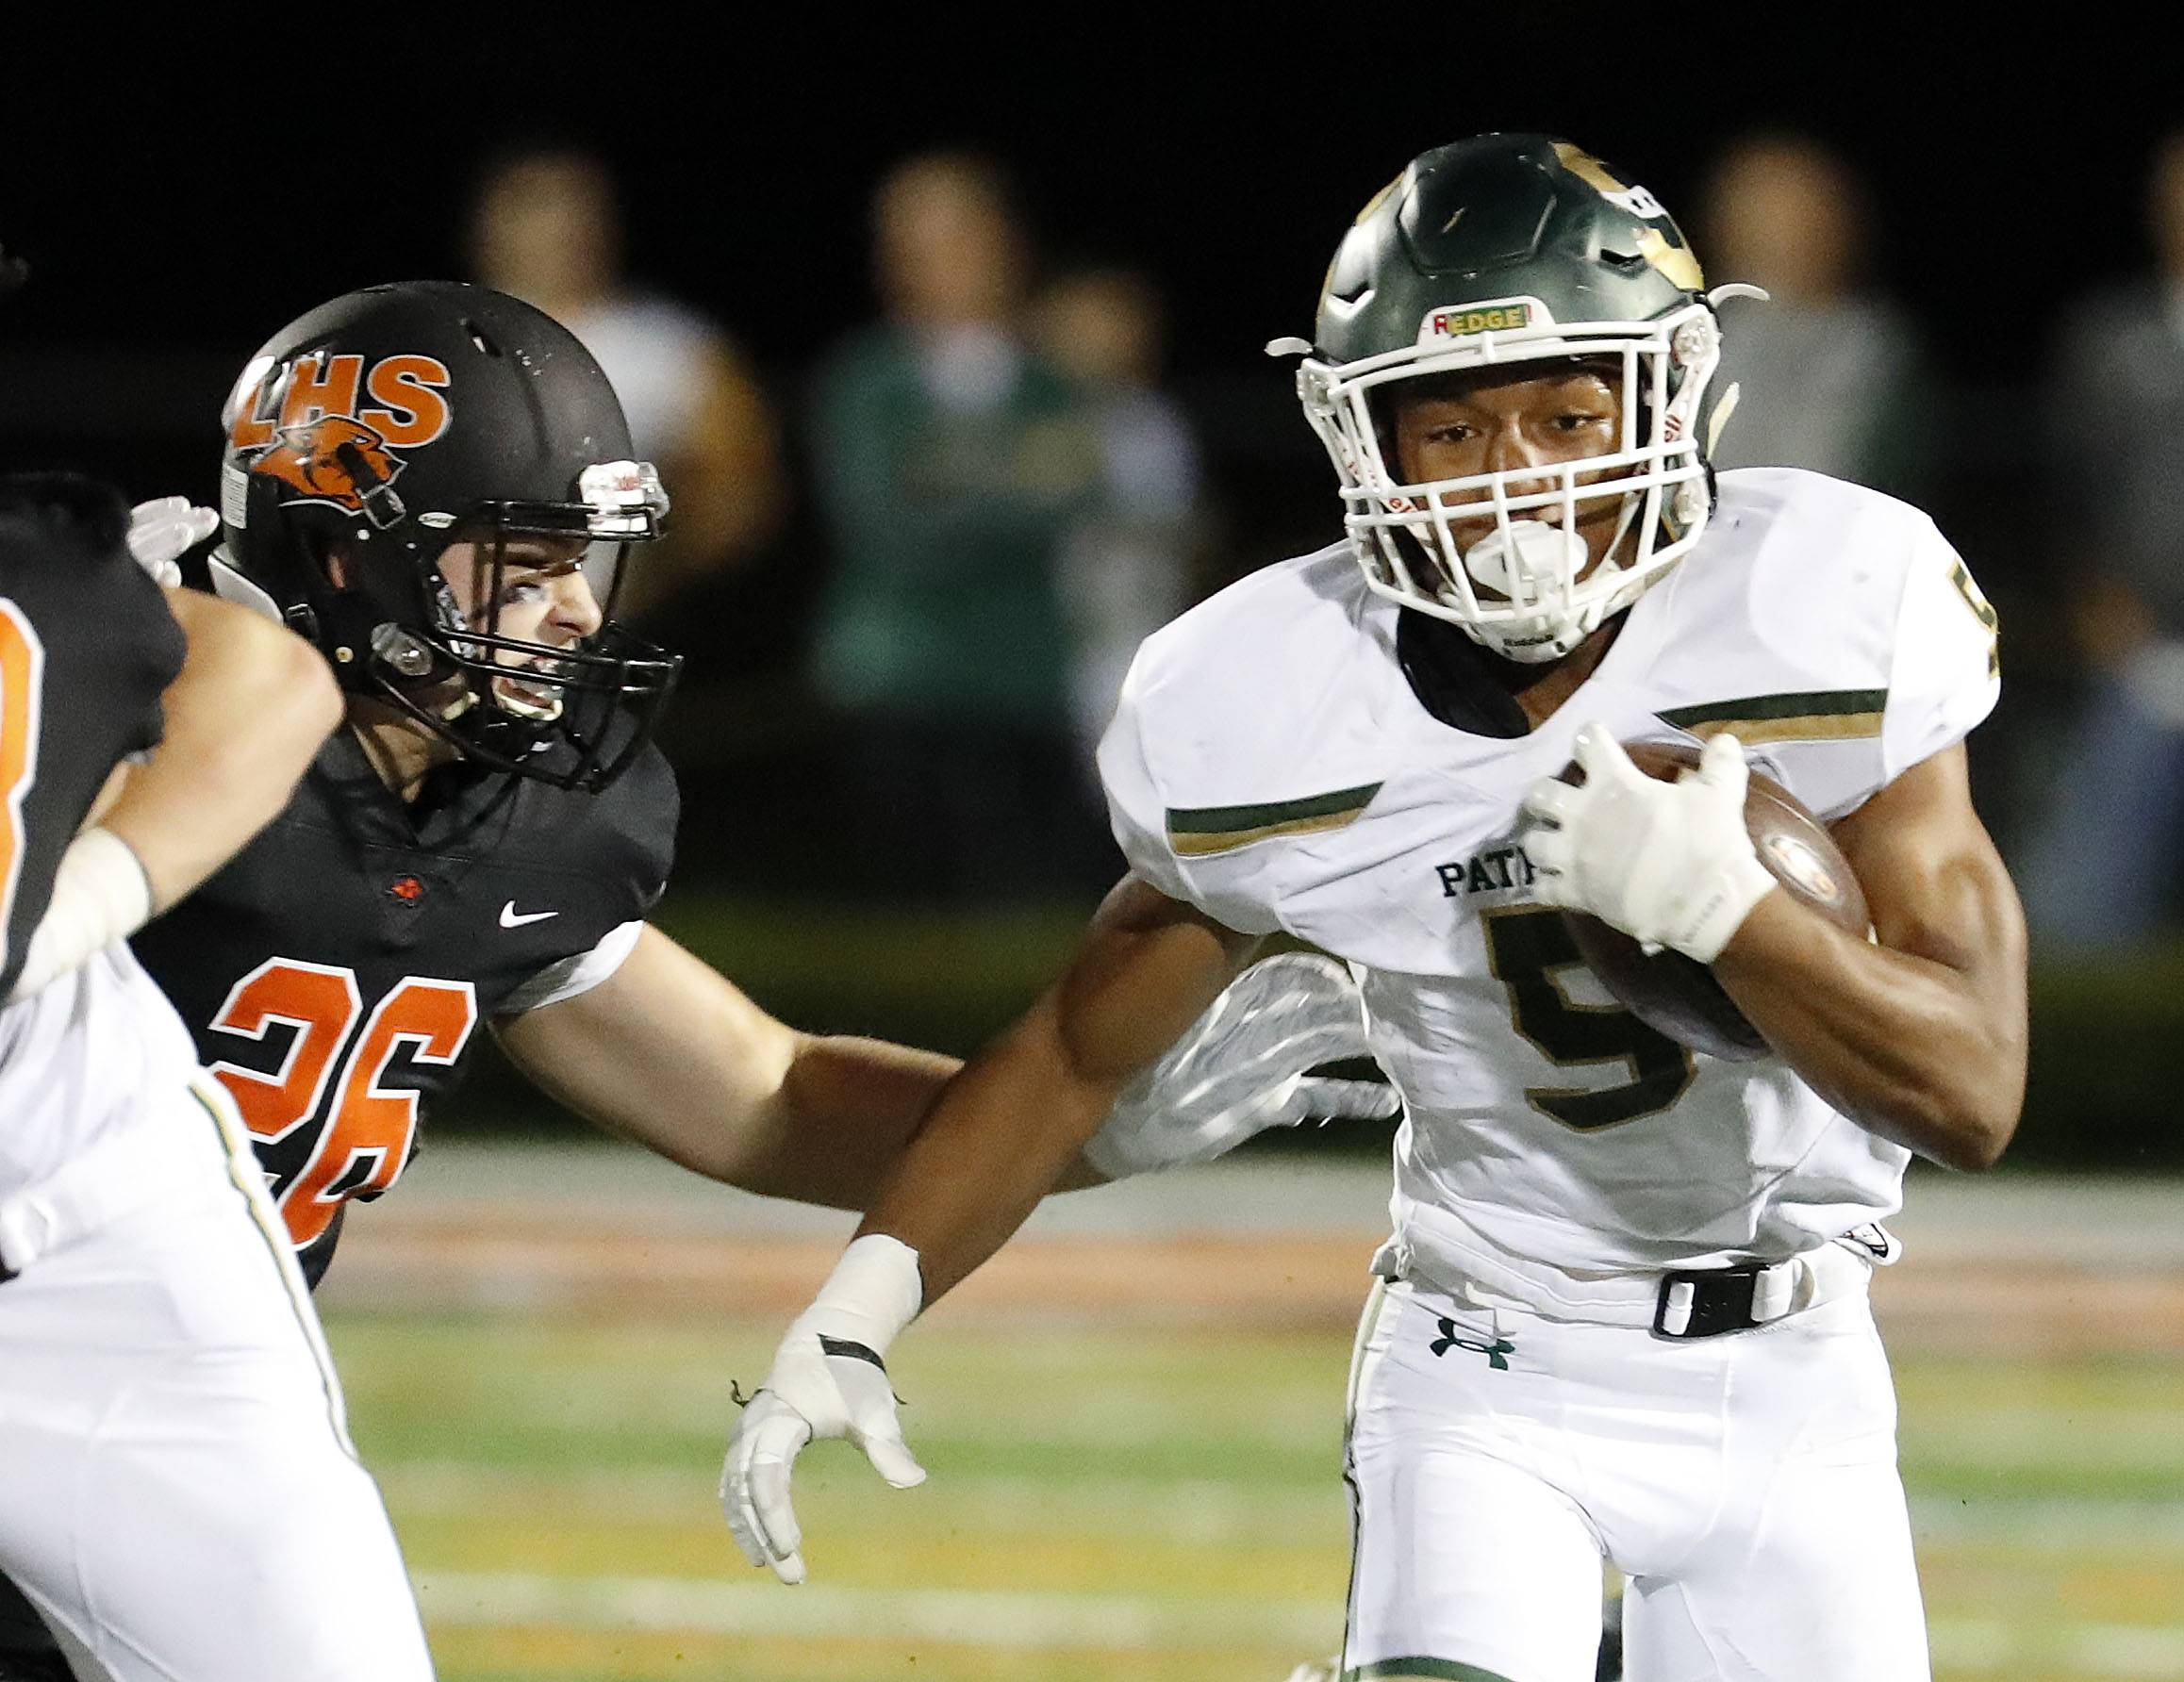 Stevenson's JeanMarc Etienne gets around Libertyville's Chase Quigley earlier this season. The Patriots take on Warren Friday night with the North Suburban Conference title on the line.